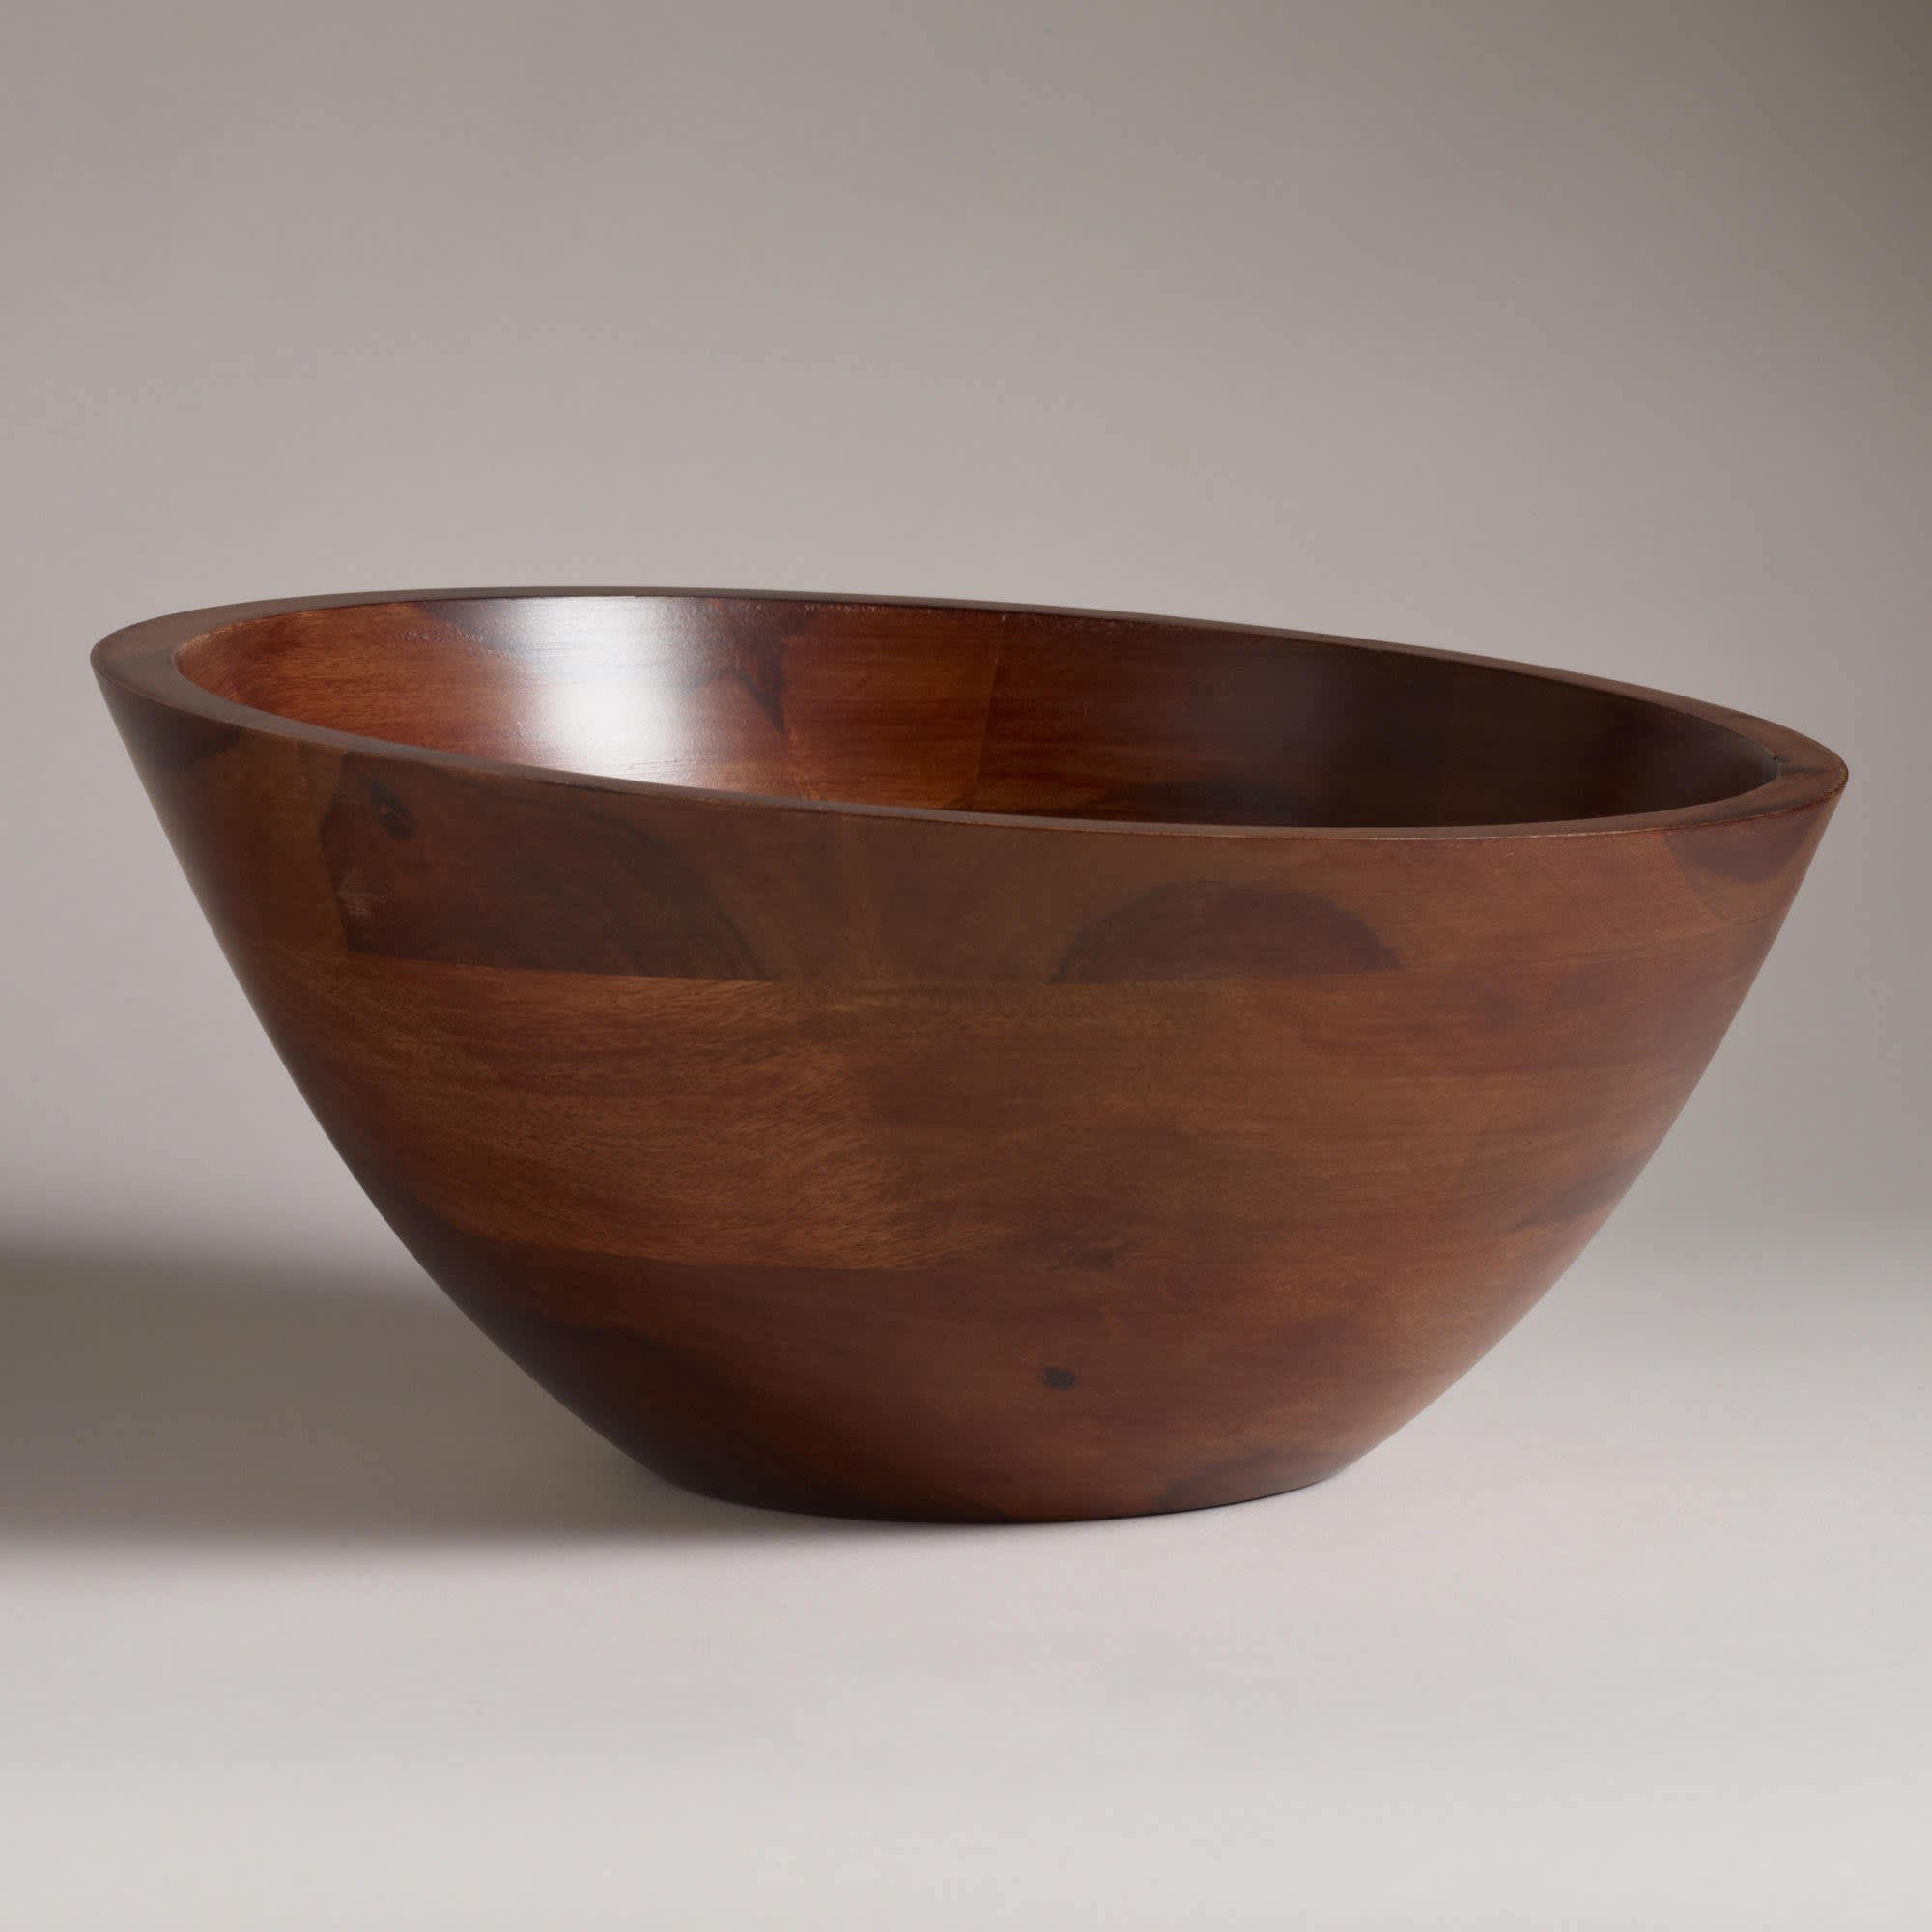 15 Serving Bowls Perfect for Your Thanksgiving Table: gallery image 10